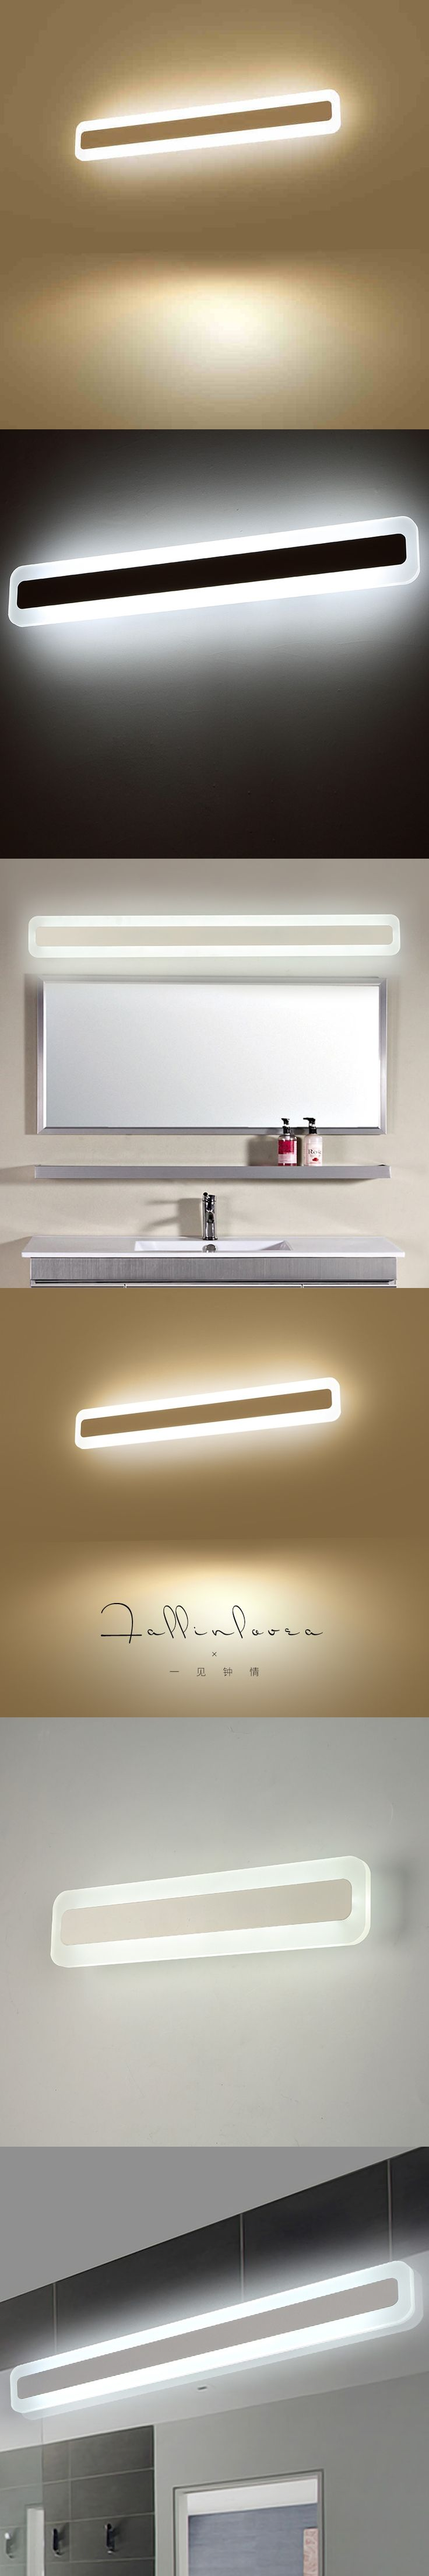 Modern LED Mirror Lights 0.4M~1.2M wall lamp Bathroom bedroom headboard cabinet wall sconce lampe deco Anti-fog espelho banheiro